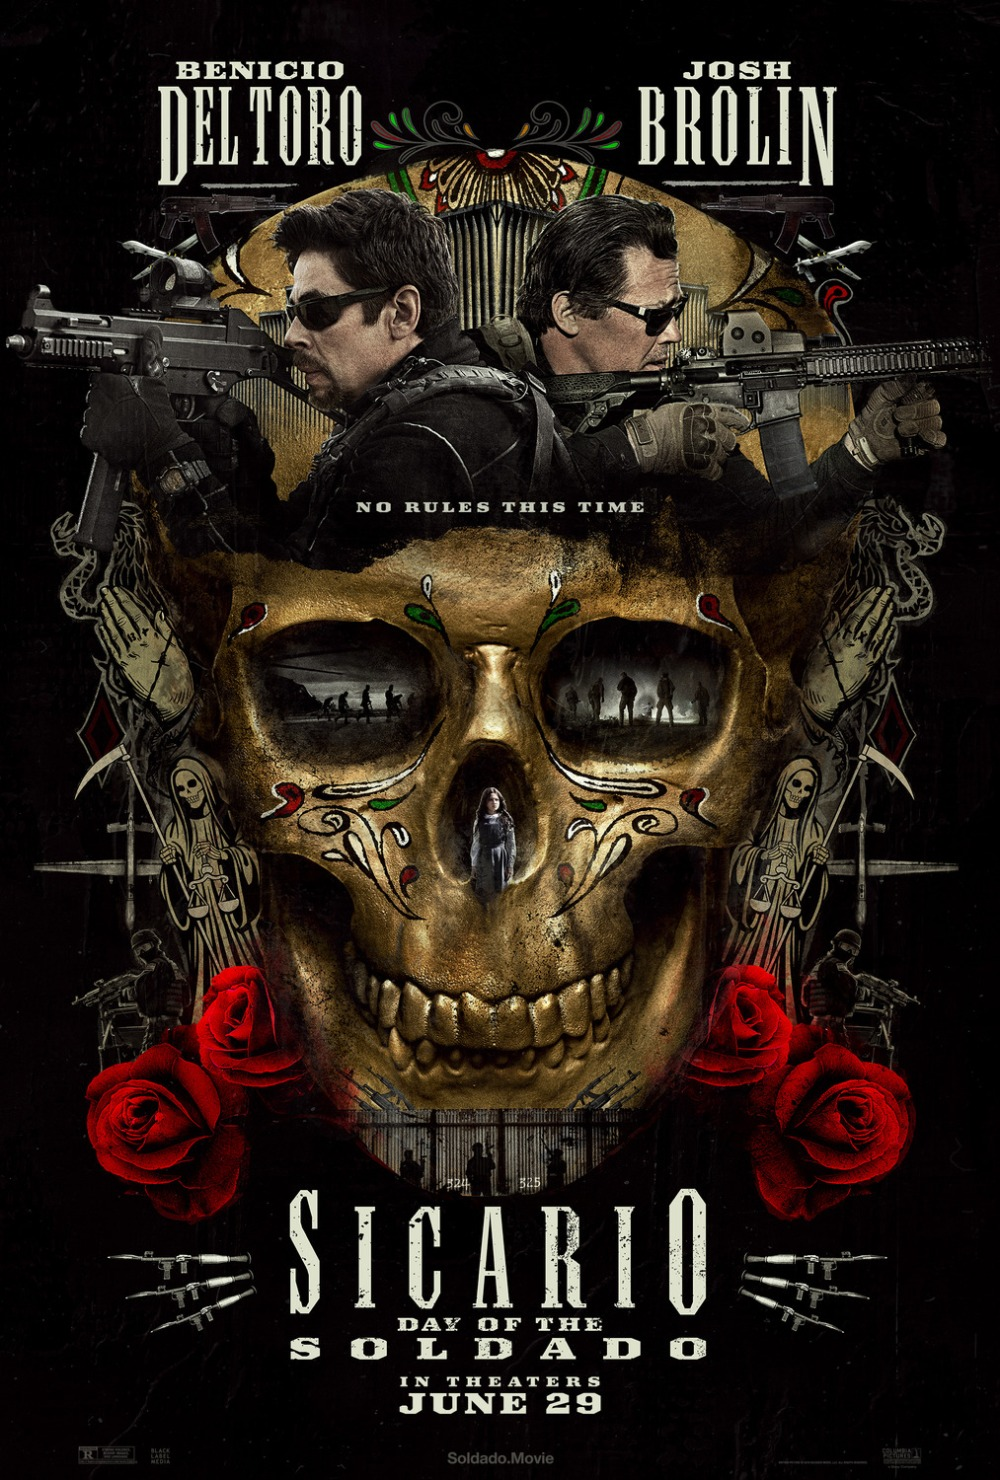 Sicario Day of the Soldado movie poster